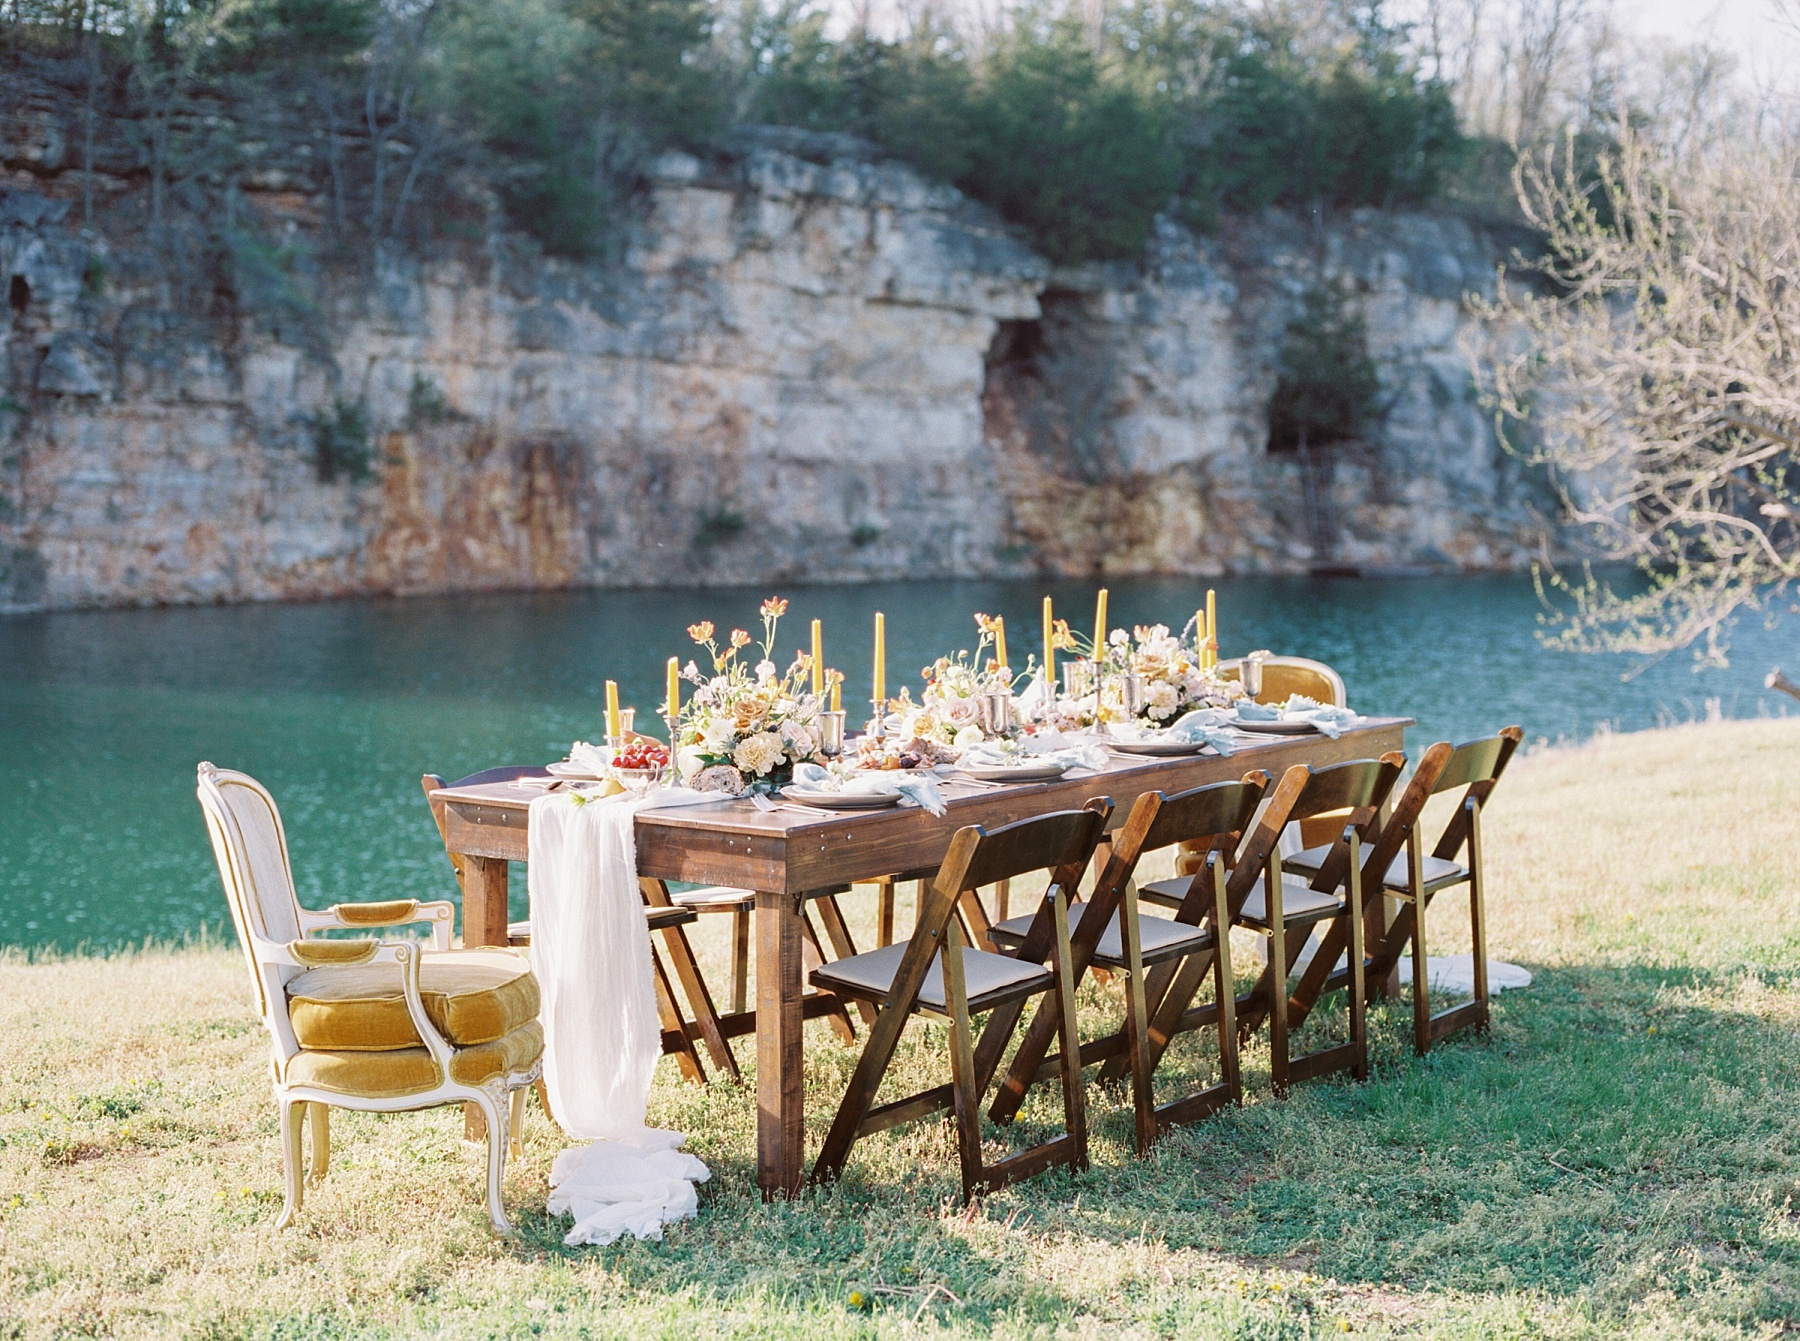 Intimate Spanish and French Inspired Destination Wedding with Lakeside Dinner Party at Dusk at Wildcliff by Kelsi Kliethermes Photography Best Missouri and Maui Wedding Photographer_0009.jpg